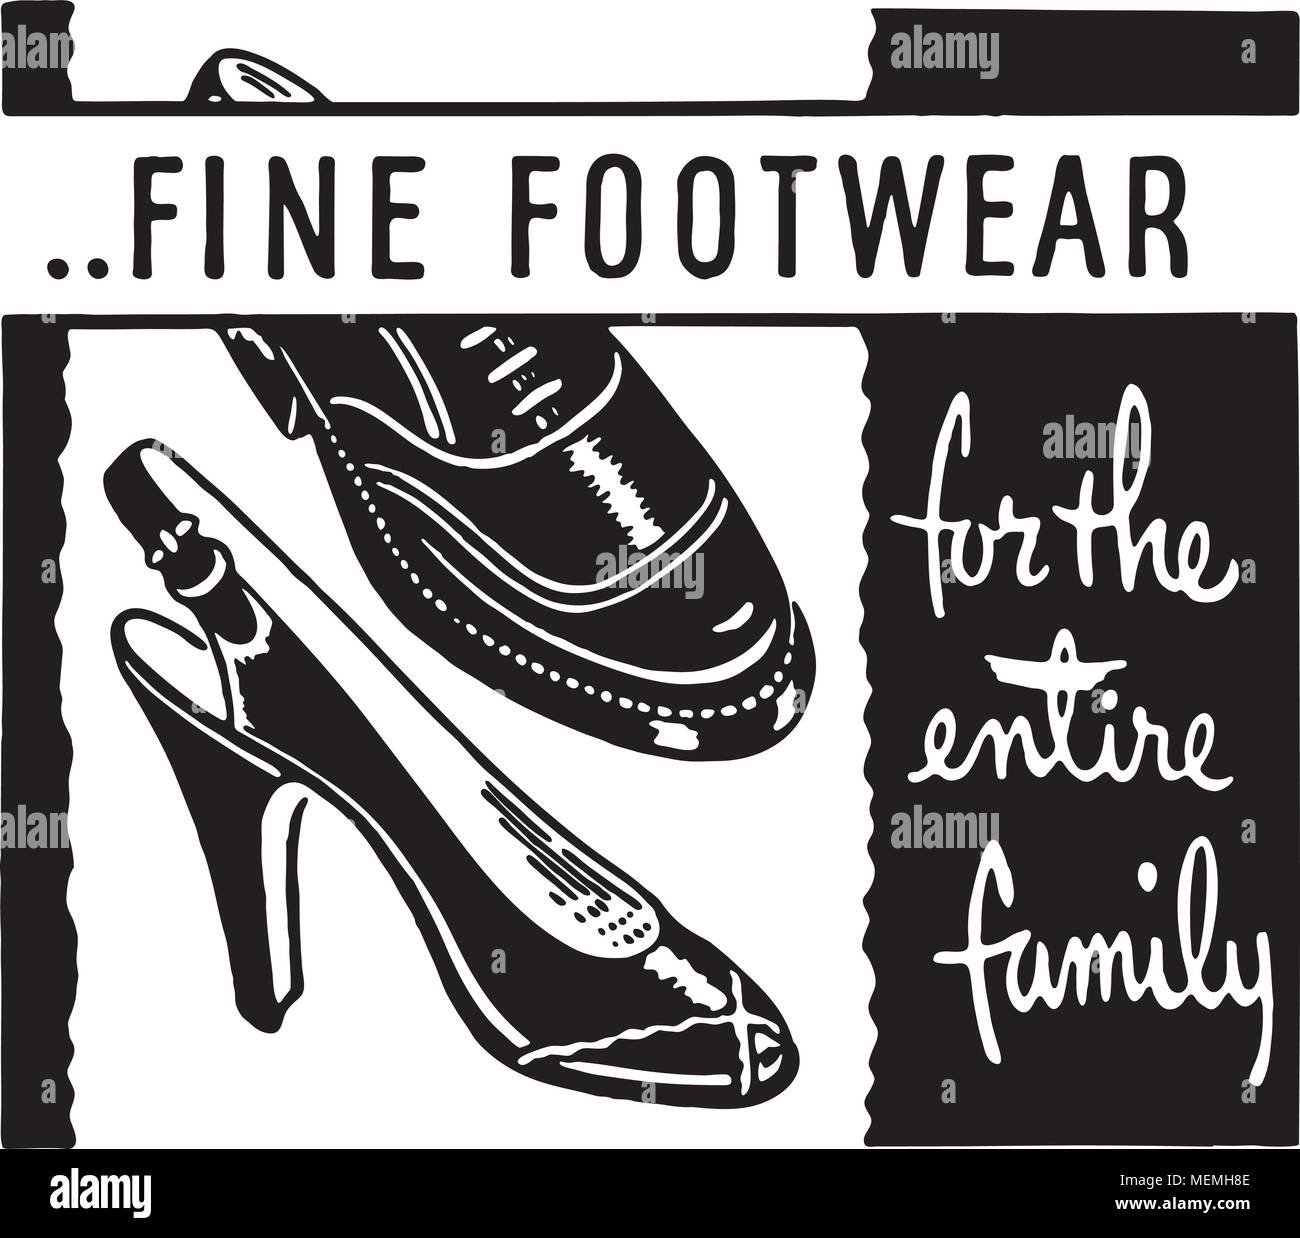 1b70ae8539868 Fine Footwear Stock Photos & Fine Footwear Stock Images - Alamy